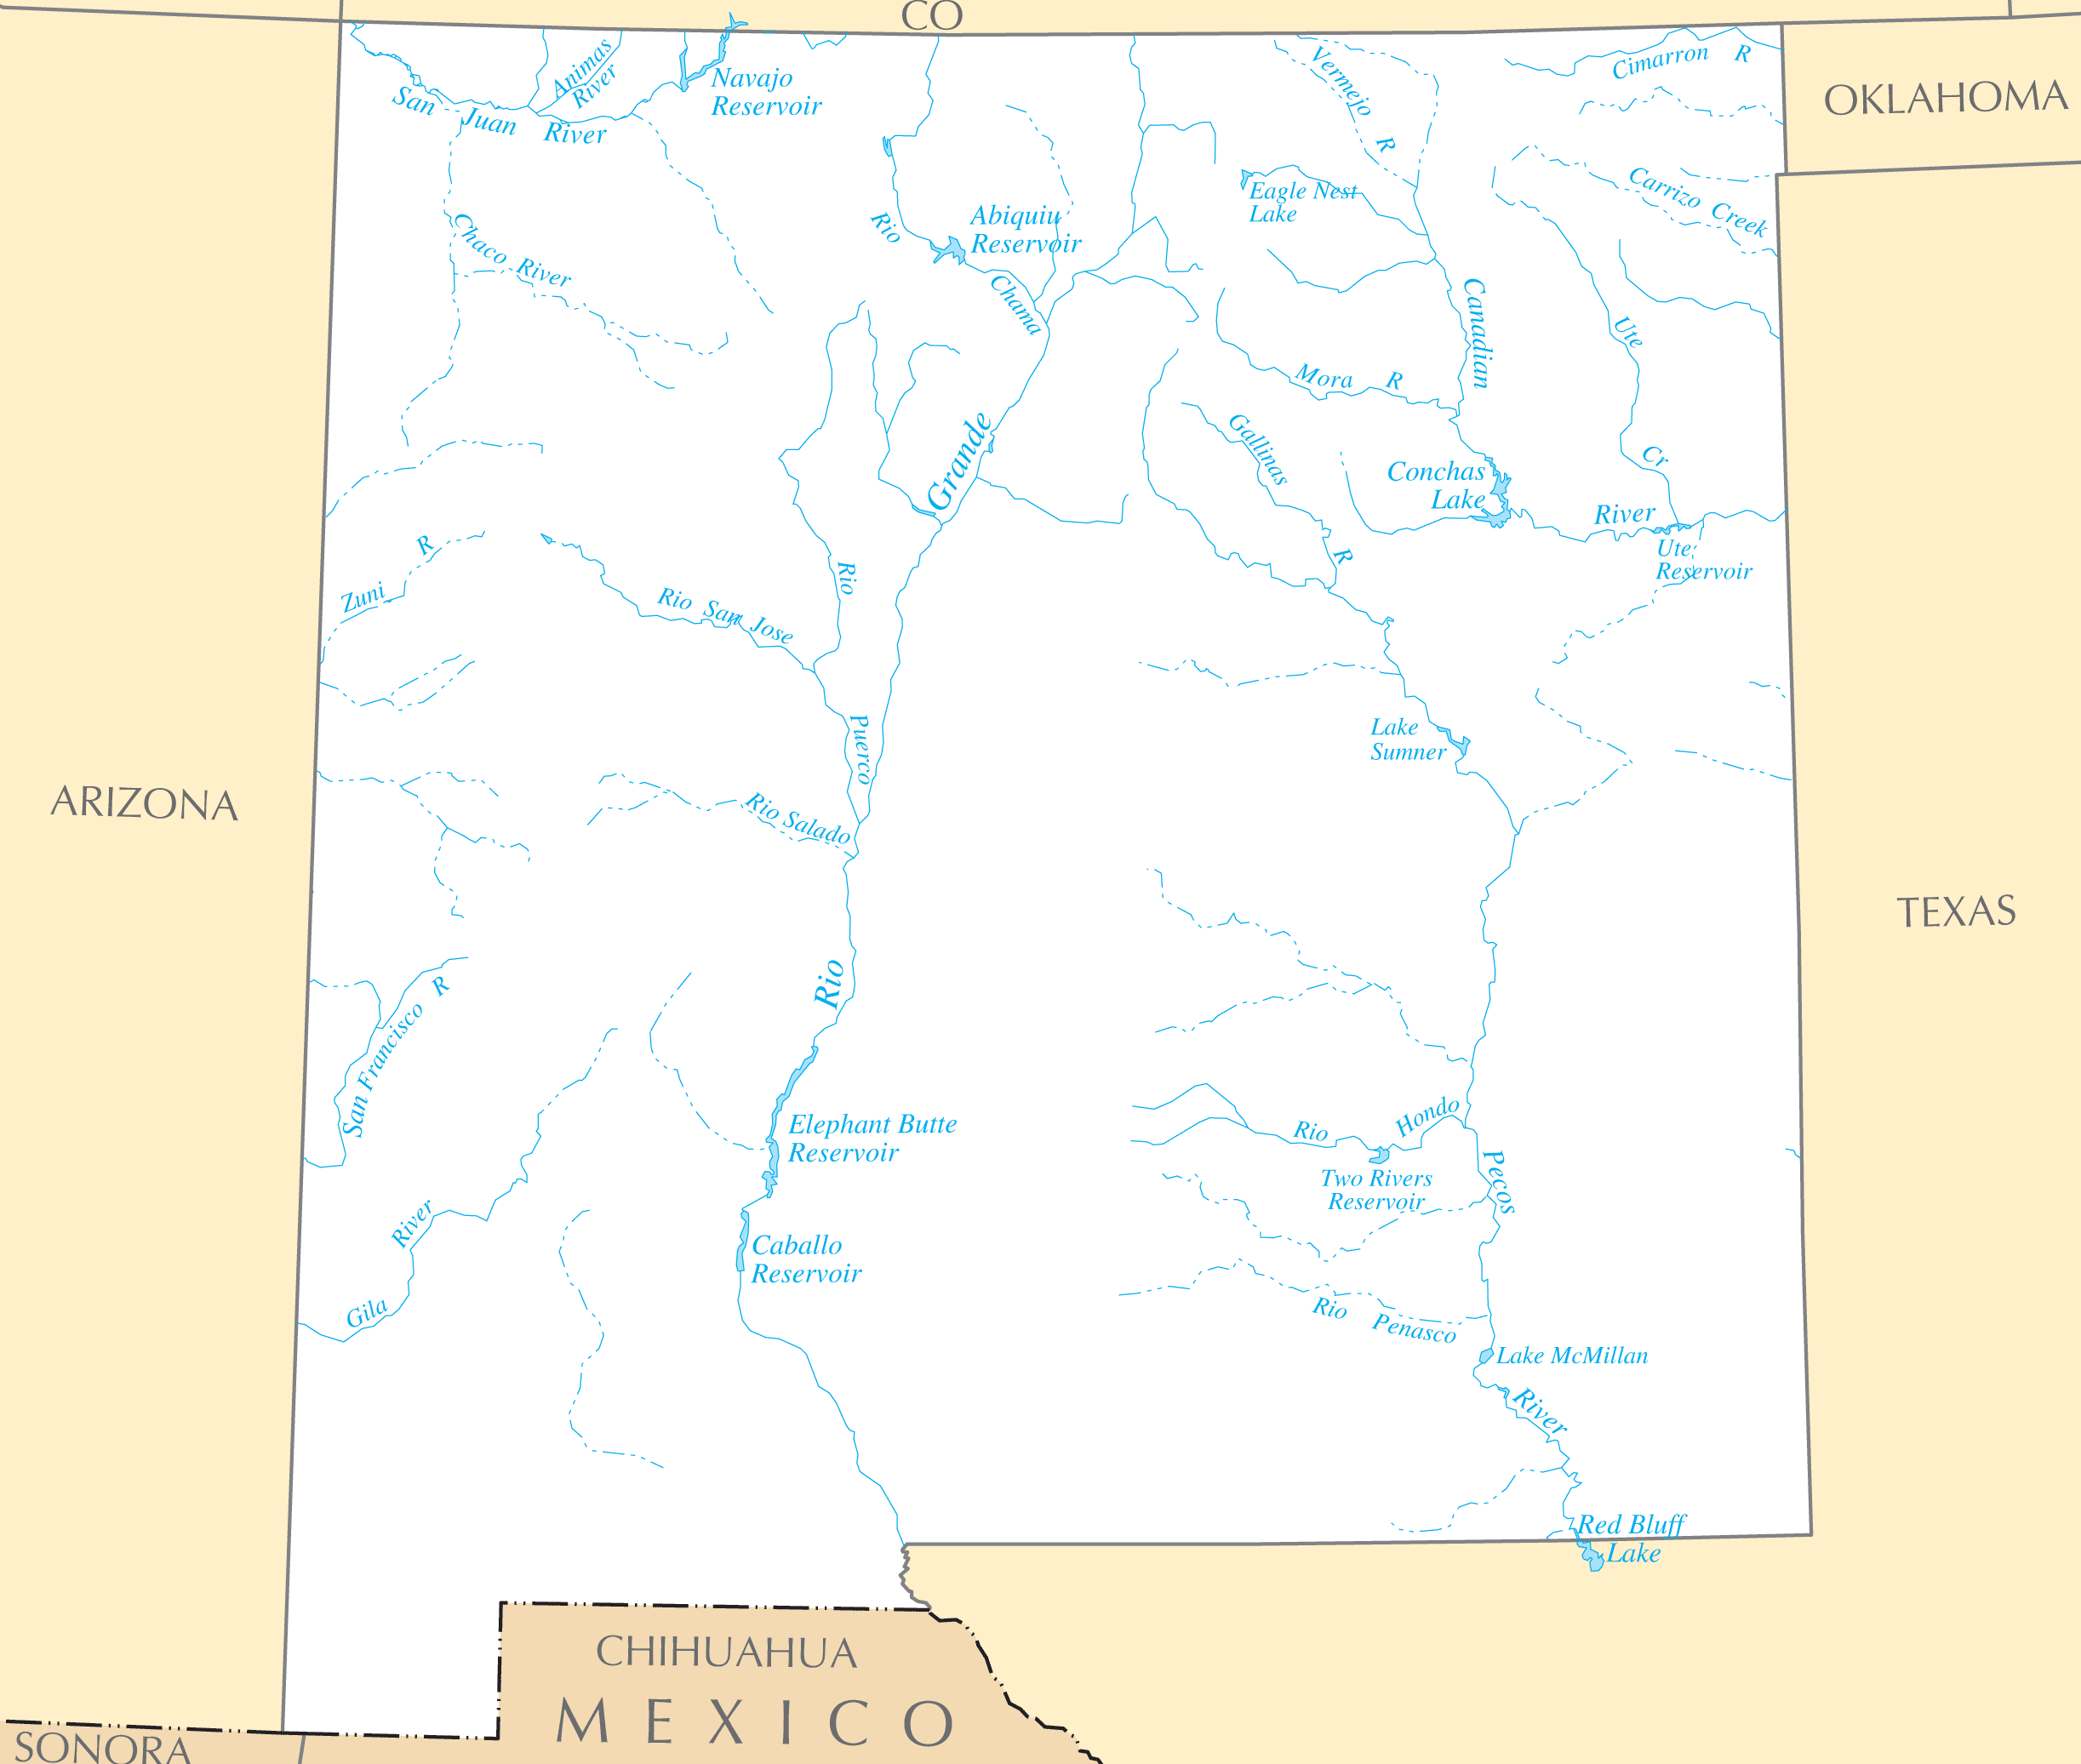 Rivers In New Mexico Map.New Mexico Rivers And Lakes Mapsof Net